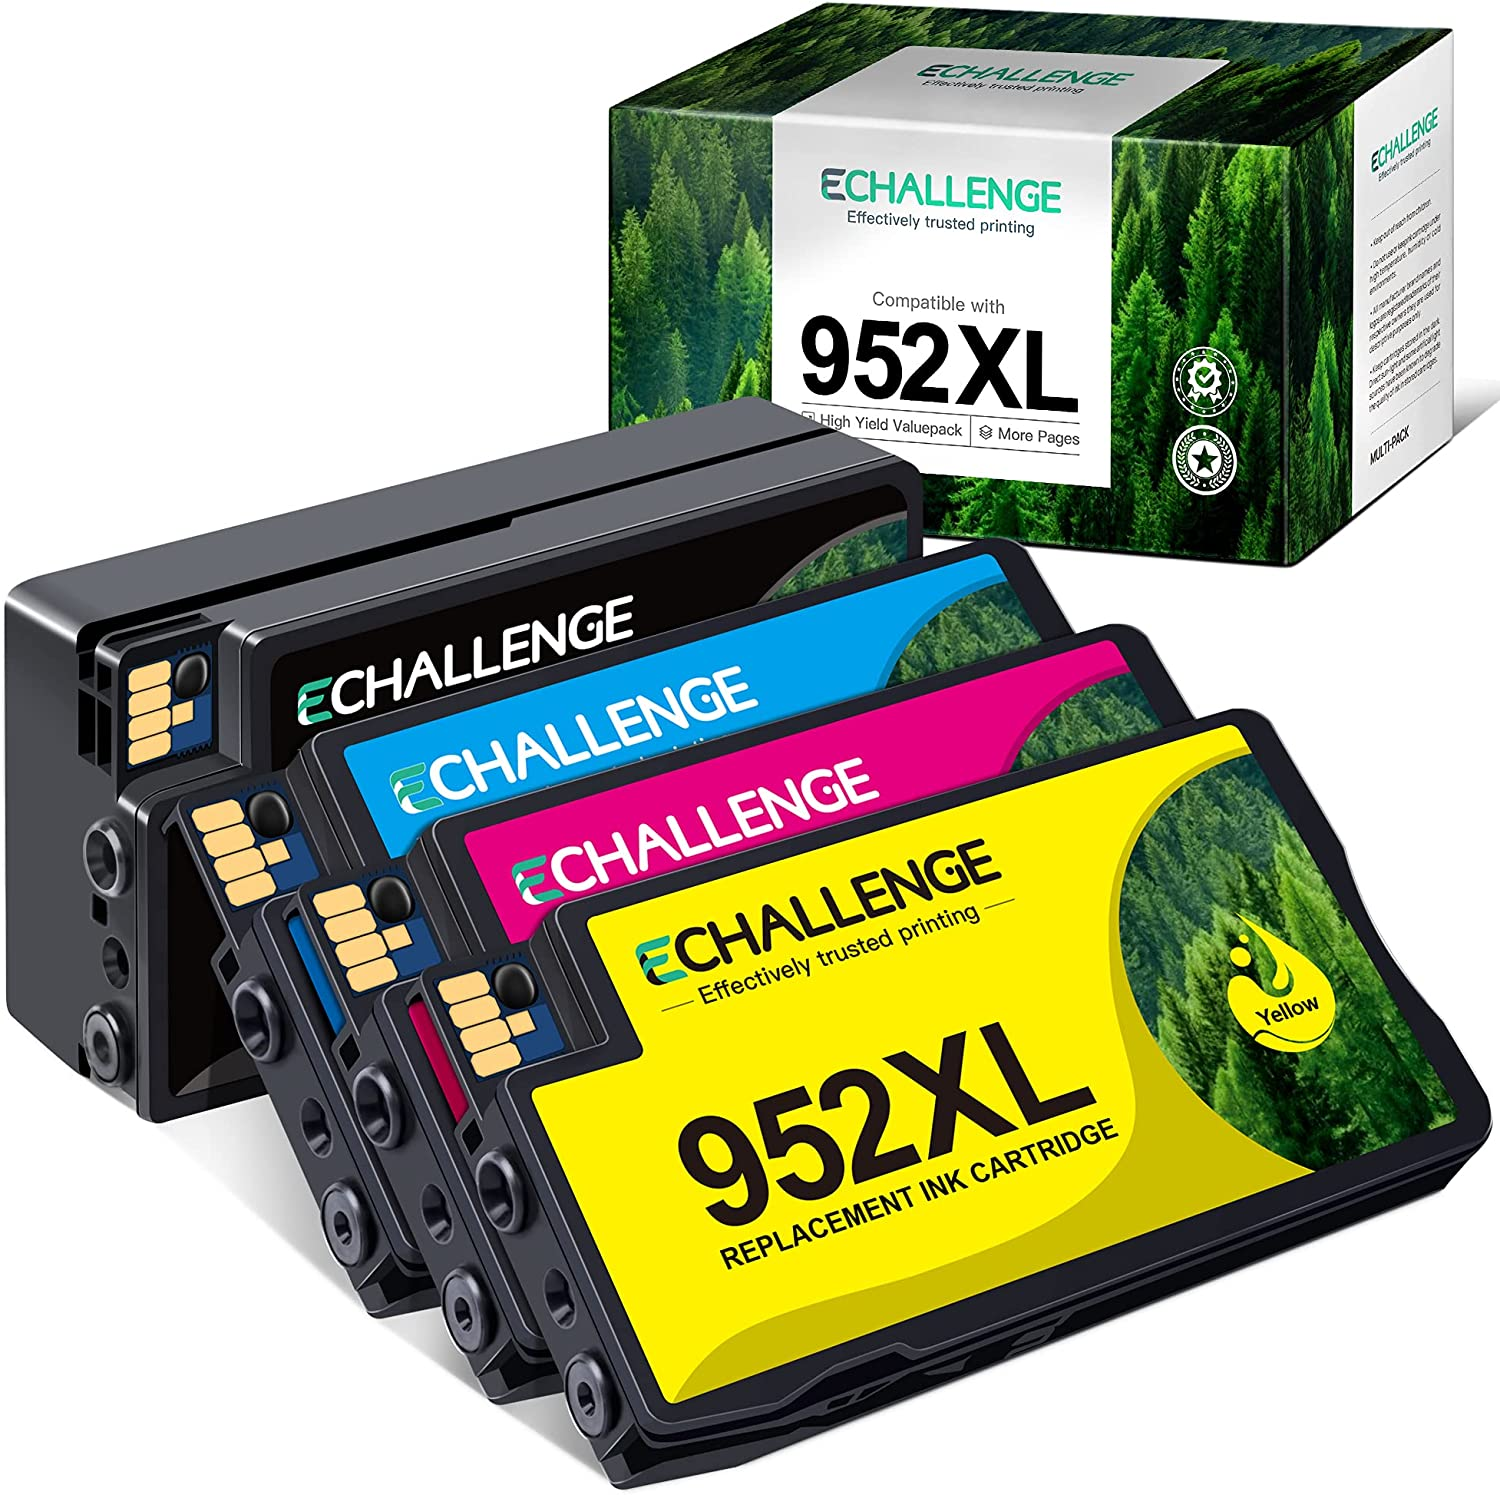 ECHALLENGE Remanufactured Ink Cartridges Replacement for HP 952 XL 952-XL 952XL 952 High Yield to Use with OfficeJet Pro 8210 8710 7740 8720 8715 8730 7720 8702 Printer Tray (4 Pack)